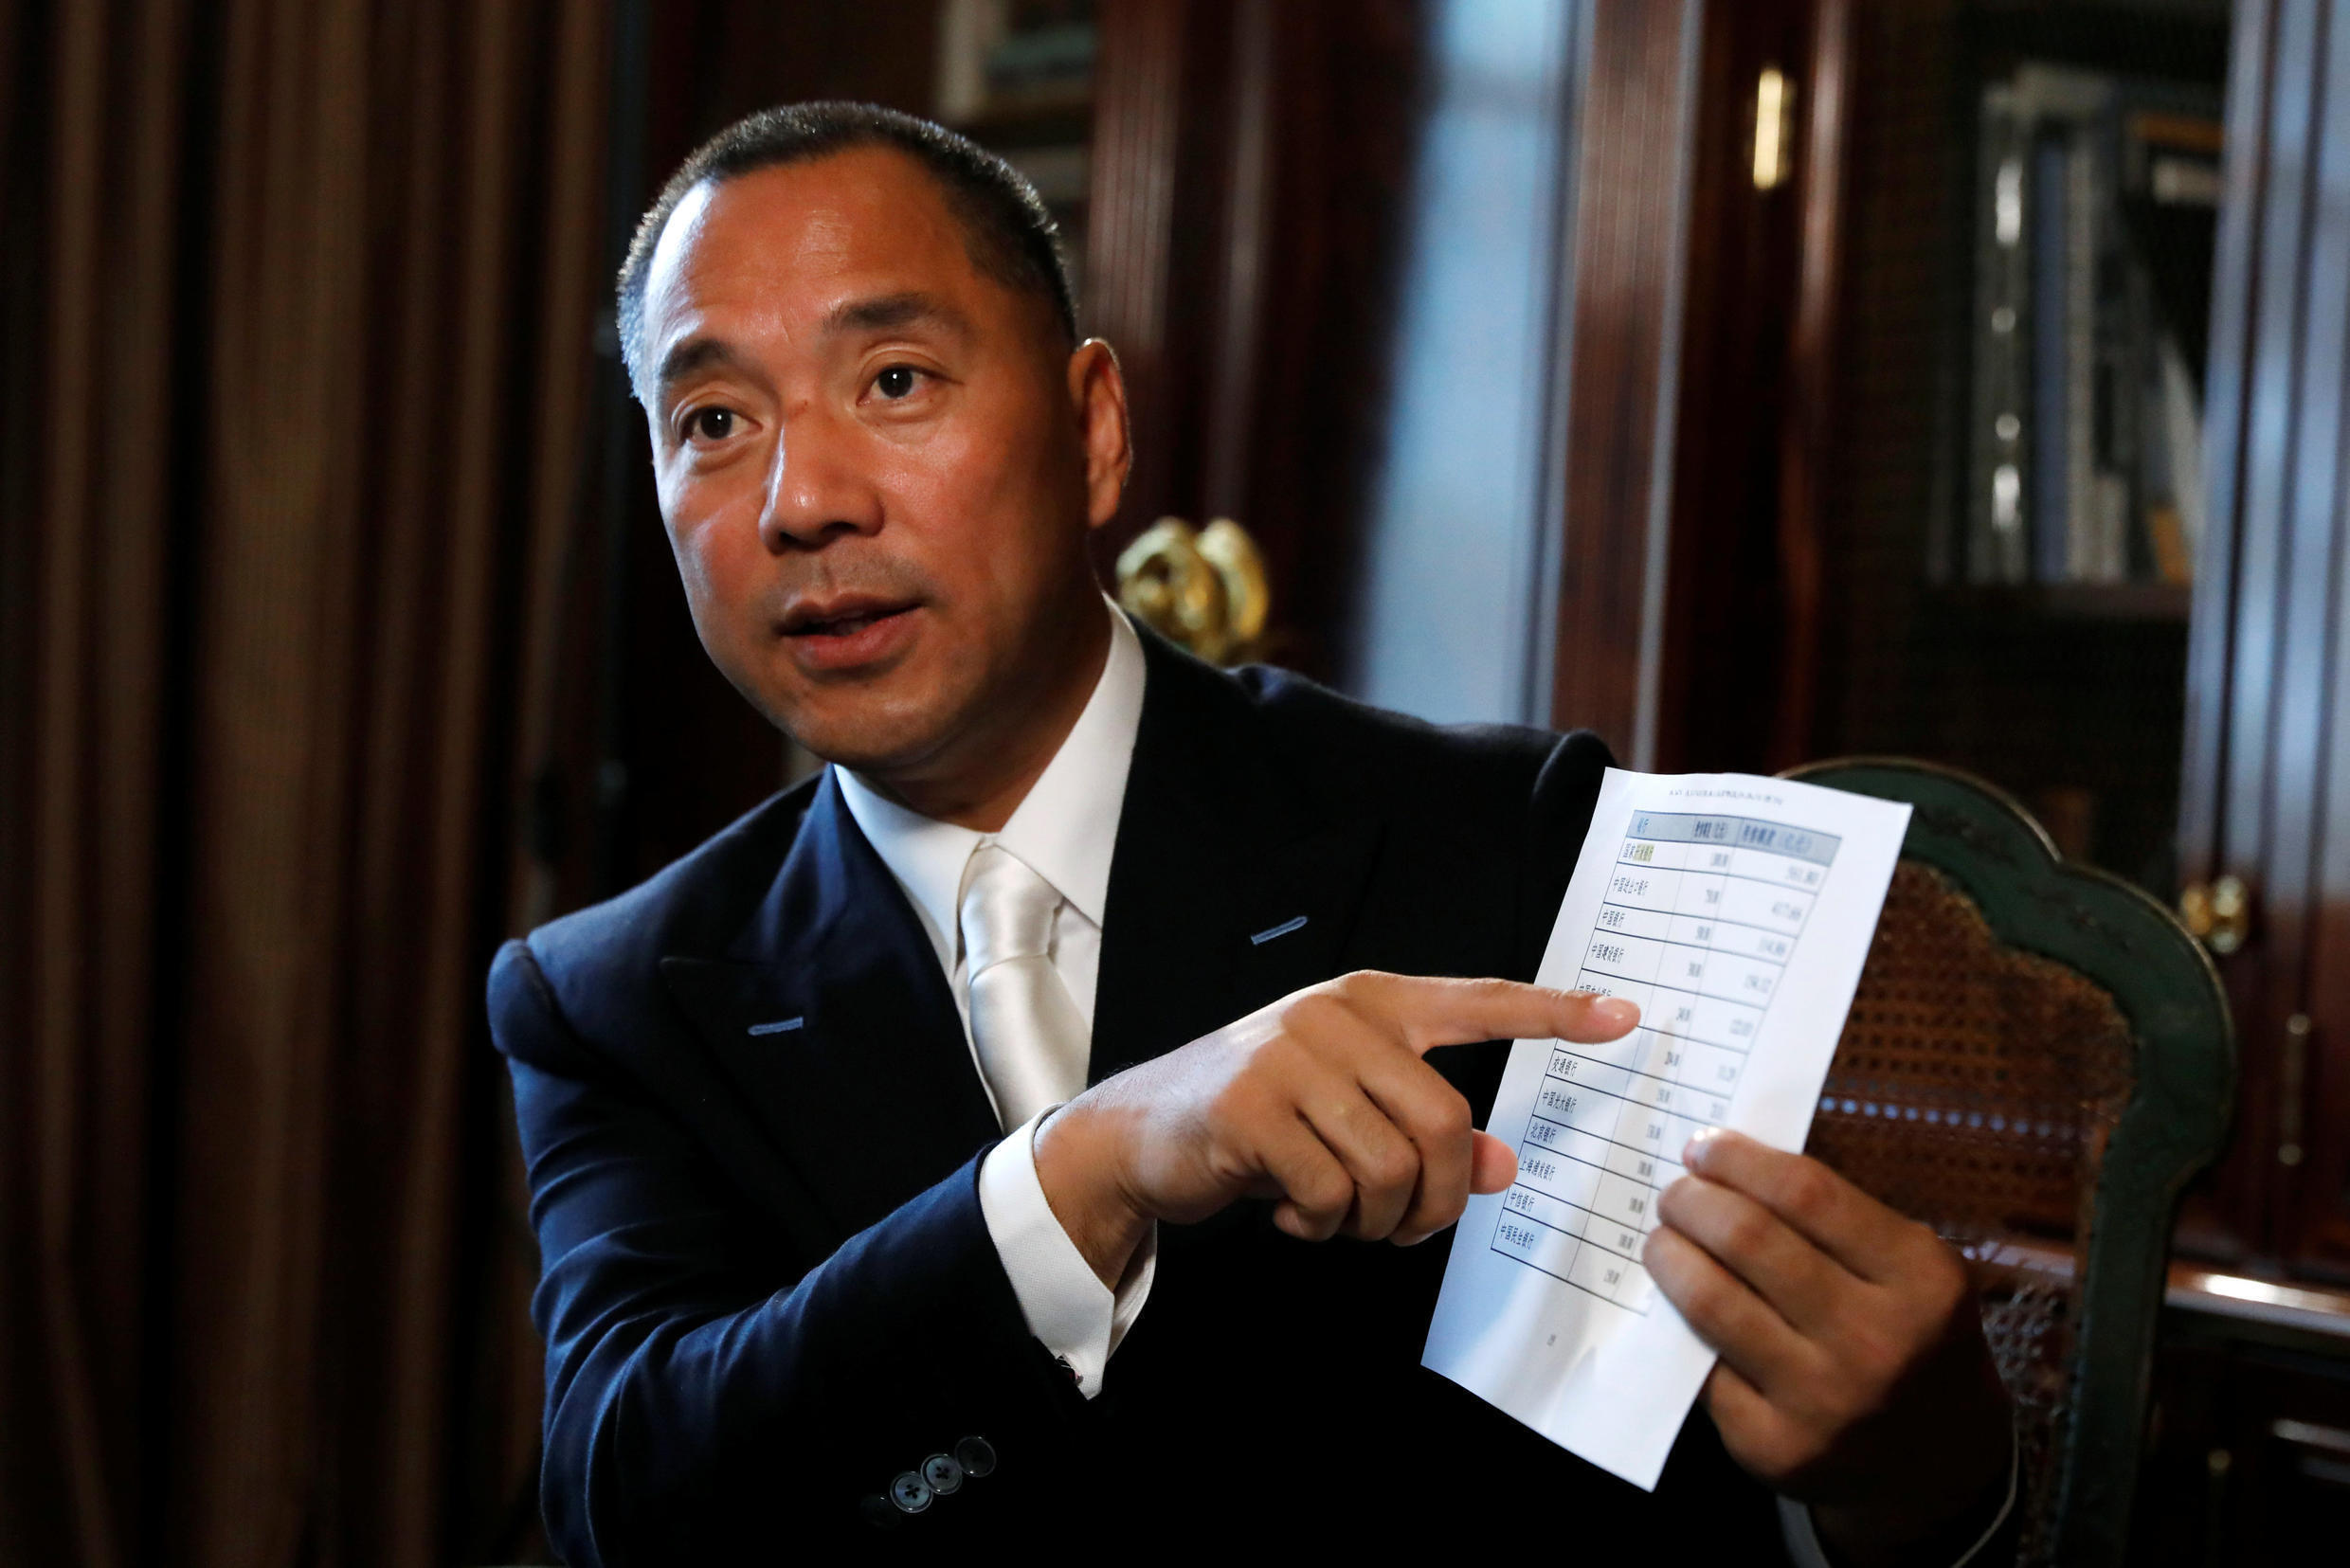 Billionaire businessman Guo Wengui speaks during an interview in New York City, U.S., April 30, 2017. Picture taken April 30, 2017.